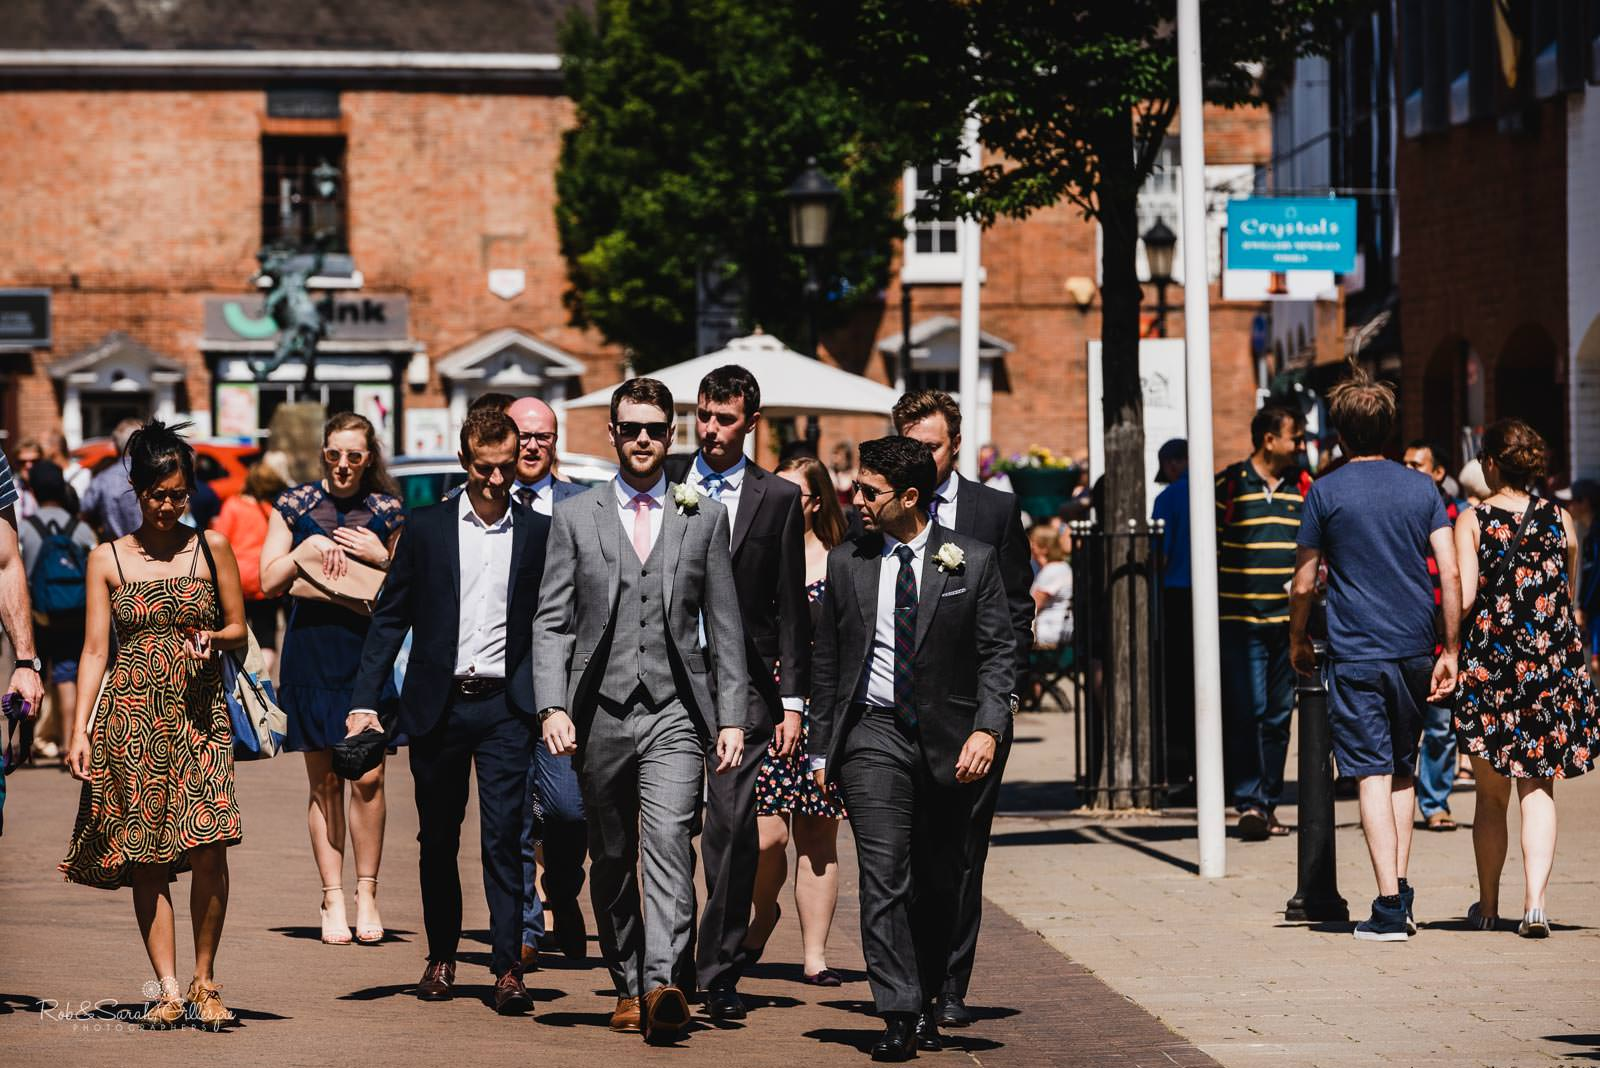 Groom and friends walk through Stratford upon Avon town centre